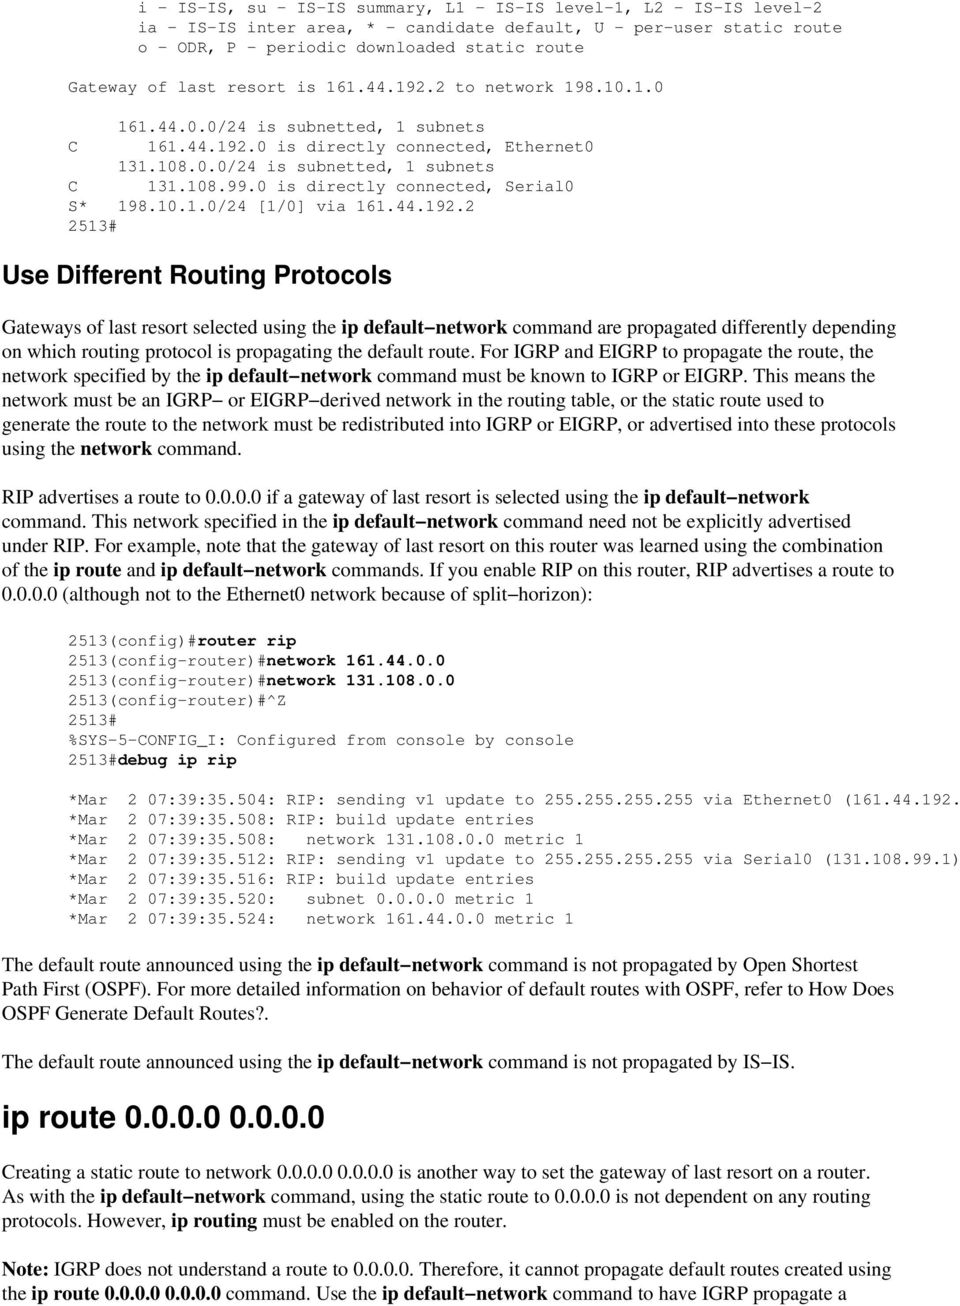 is propagating the default route. For IGRP and EIGRP to propagate the route, the network specified by the ip default network command must be known to IGRP or EIGRP.